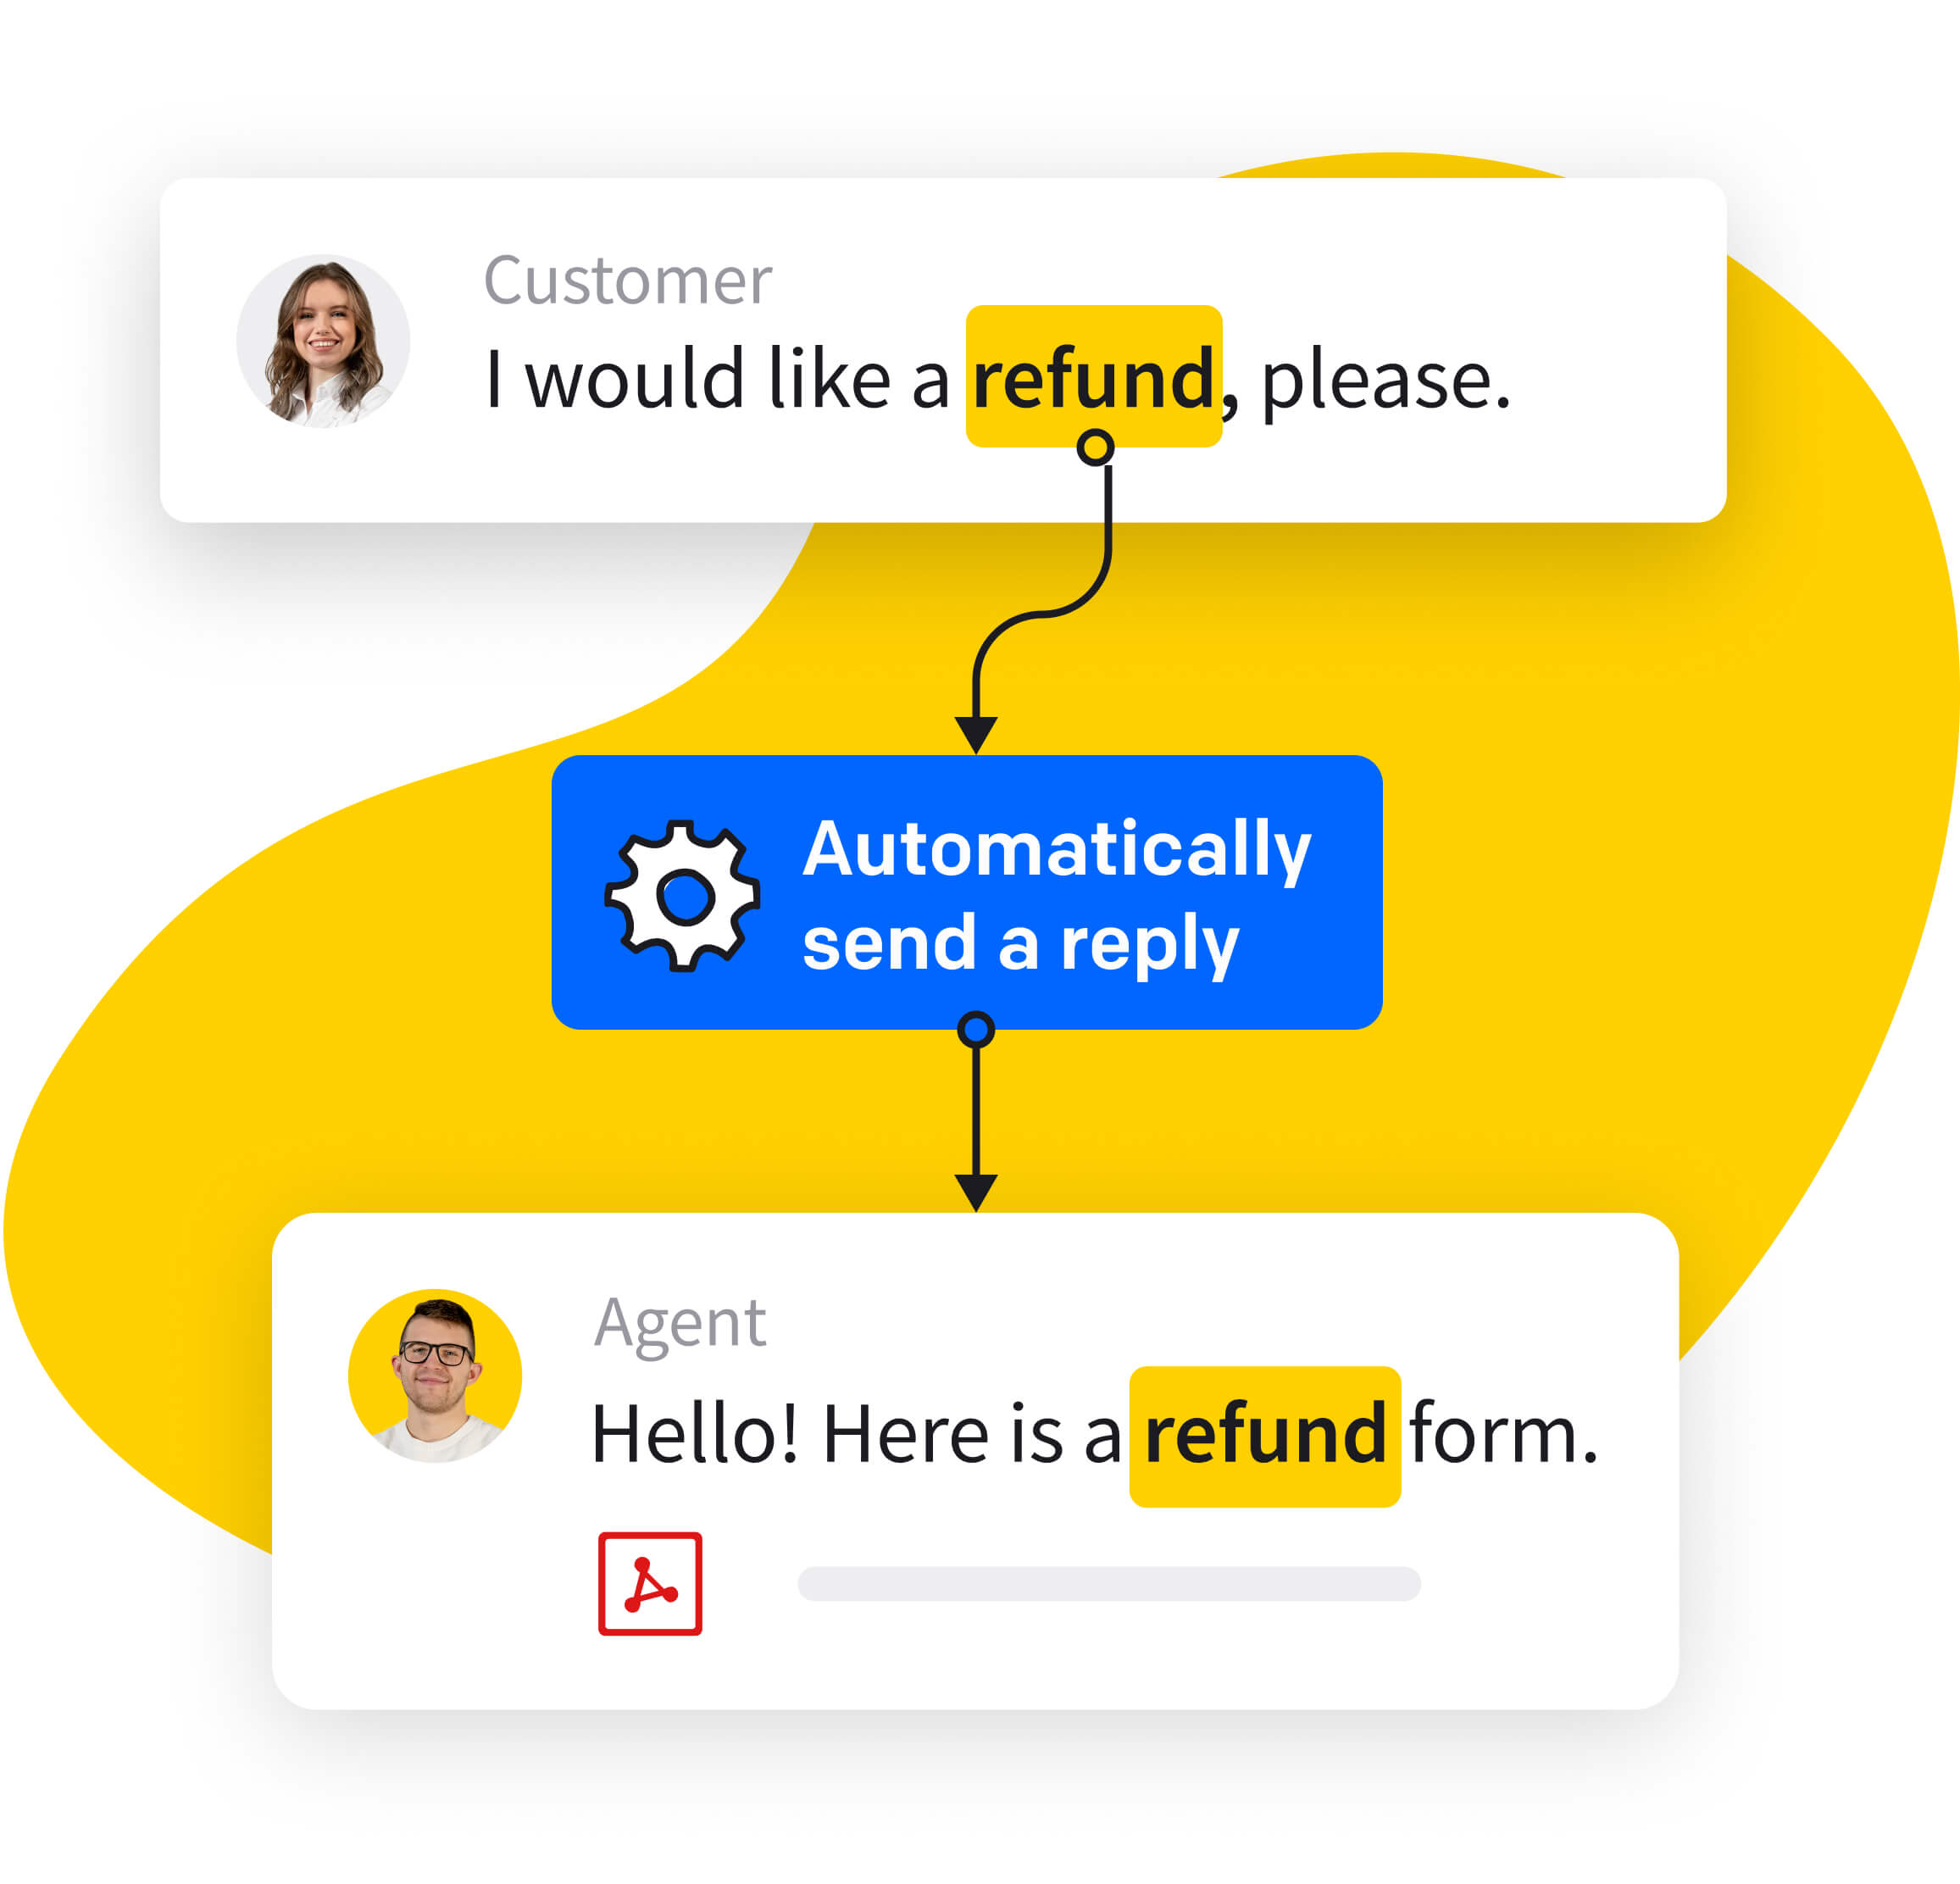 Message from the customer with a refund request, followed by an automatic reply with the refund form